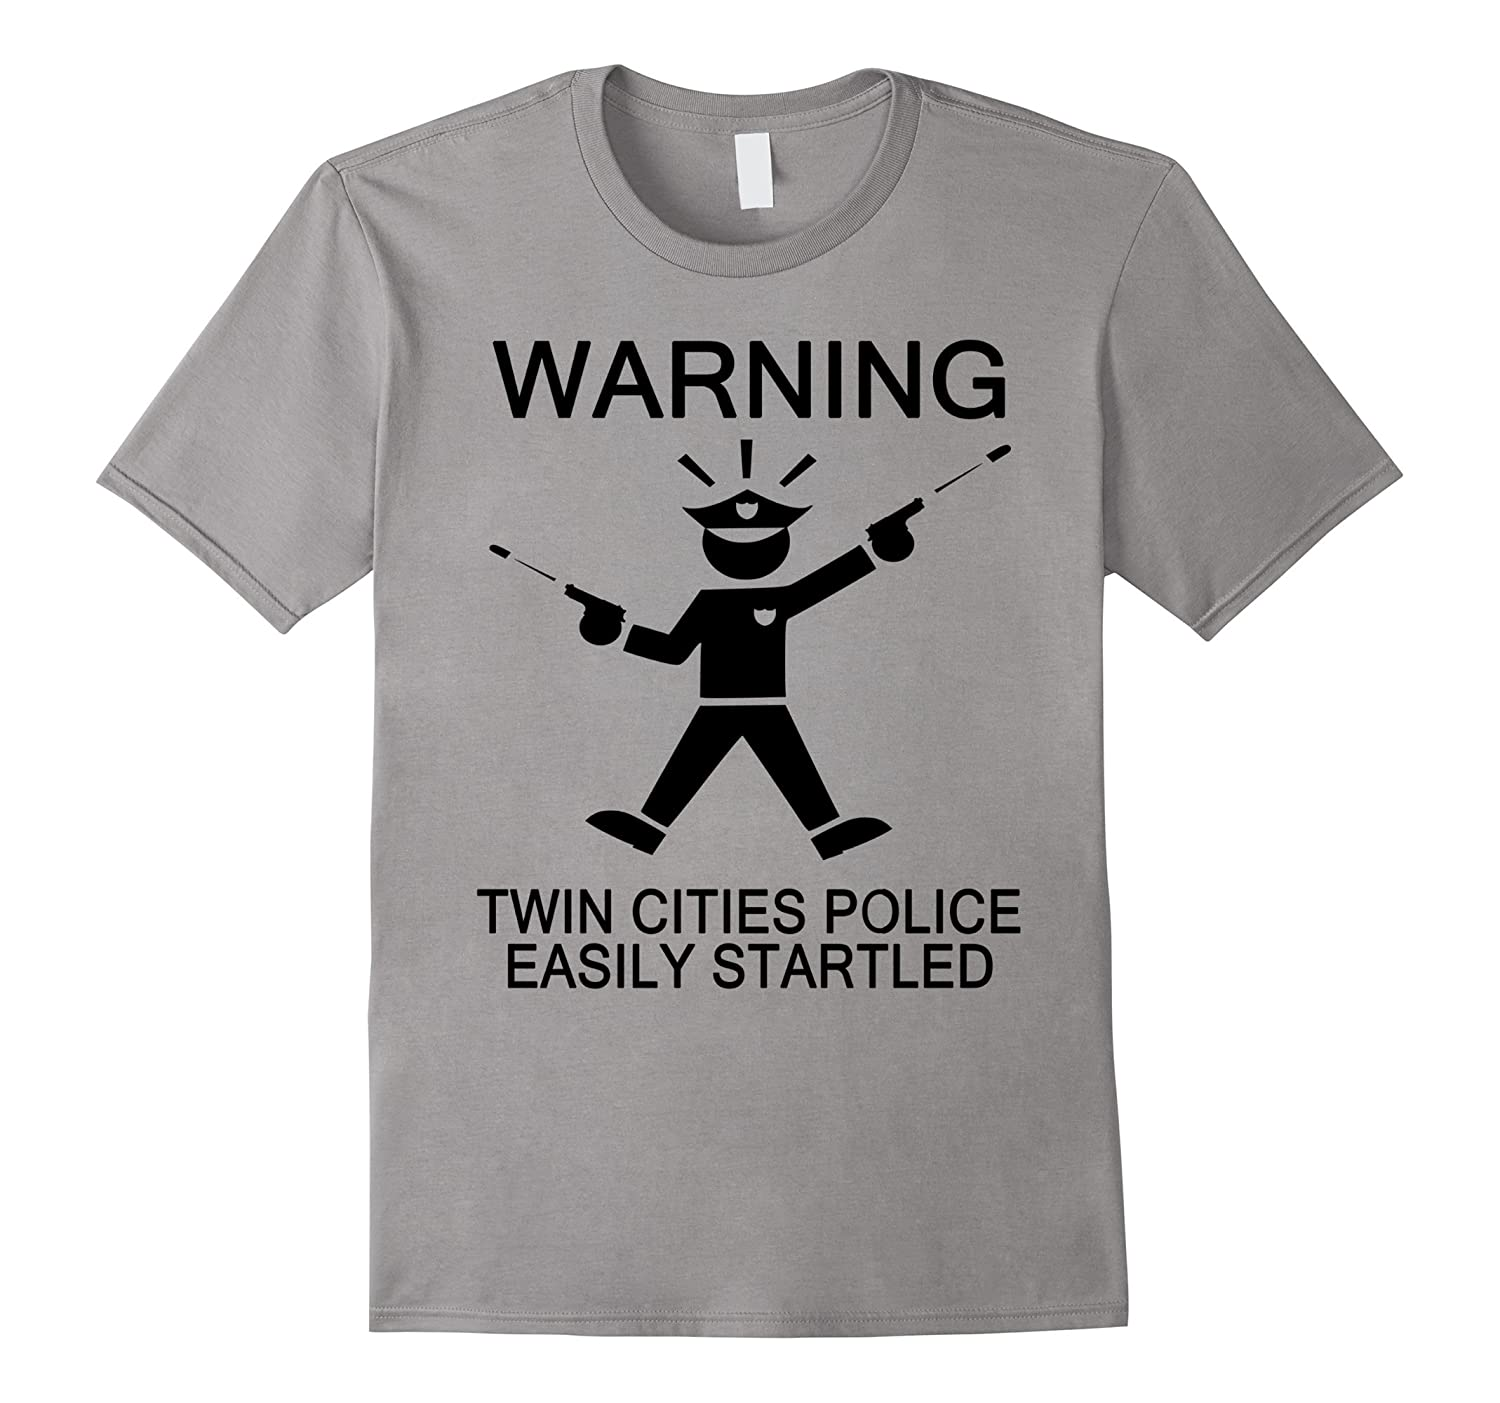 Twin Cities Police Easily Startled Funny Warning T-Shirt-BN